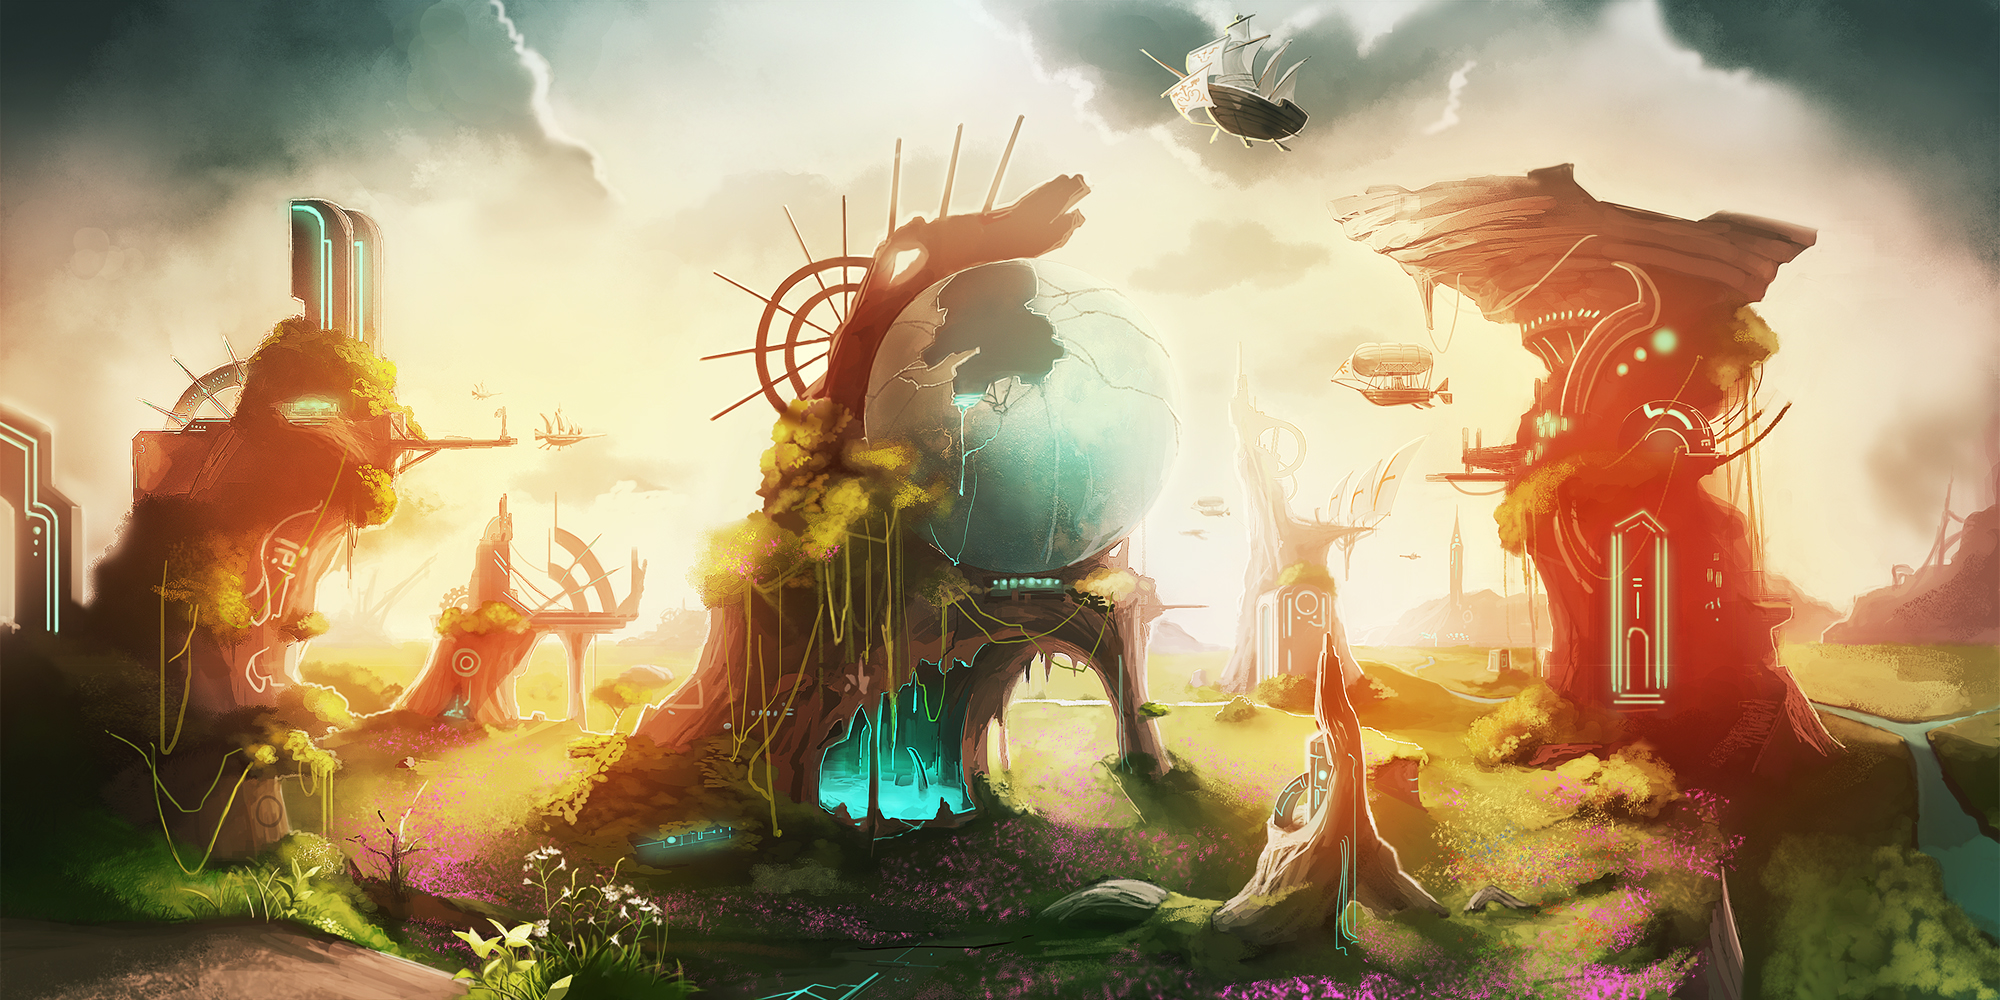 Pixiv fantasia wallpaper and background image 2000x1000 - Anime scenery wallpaper laptop ...